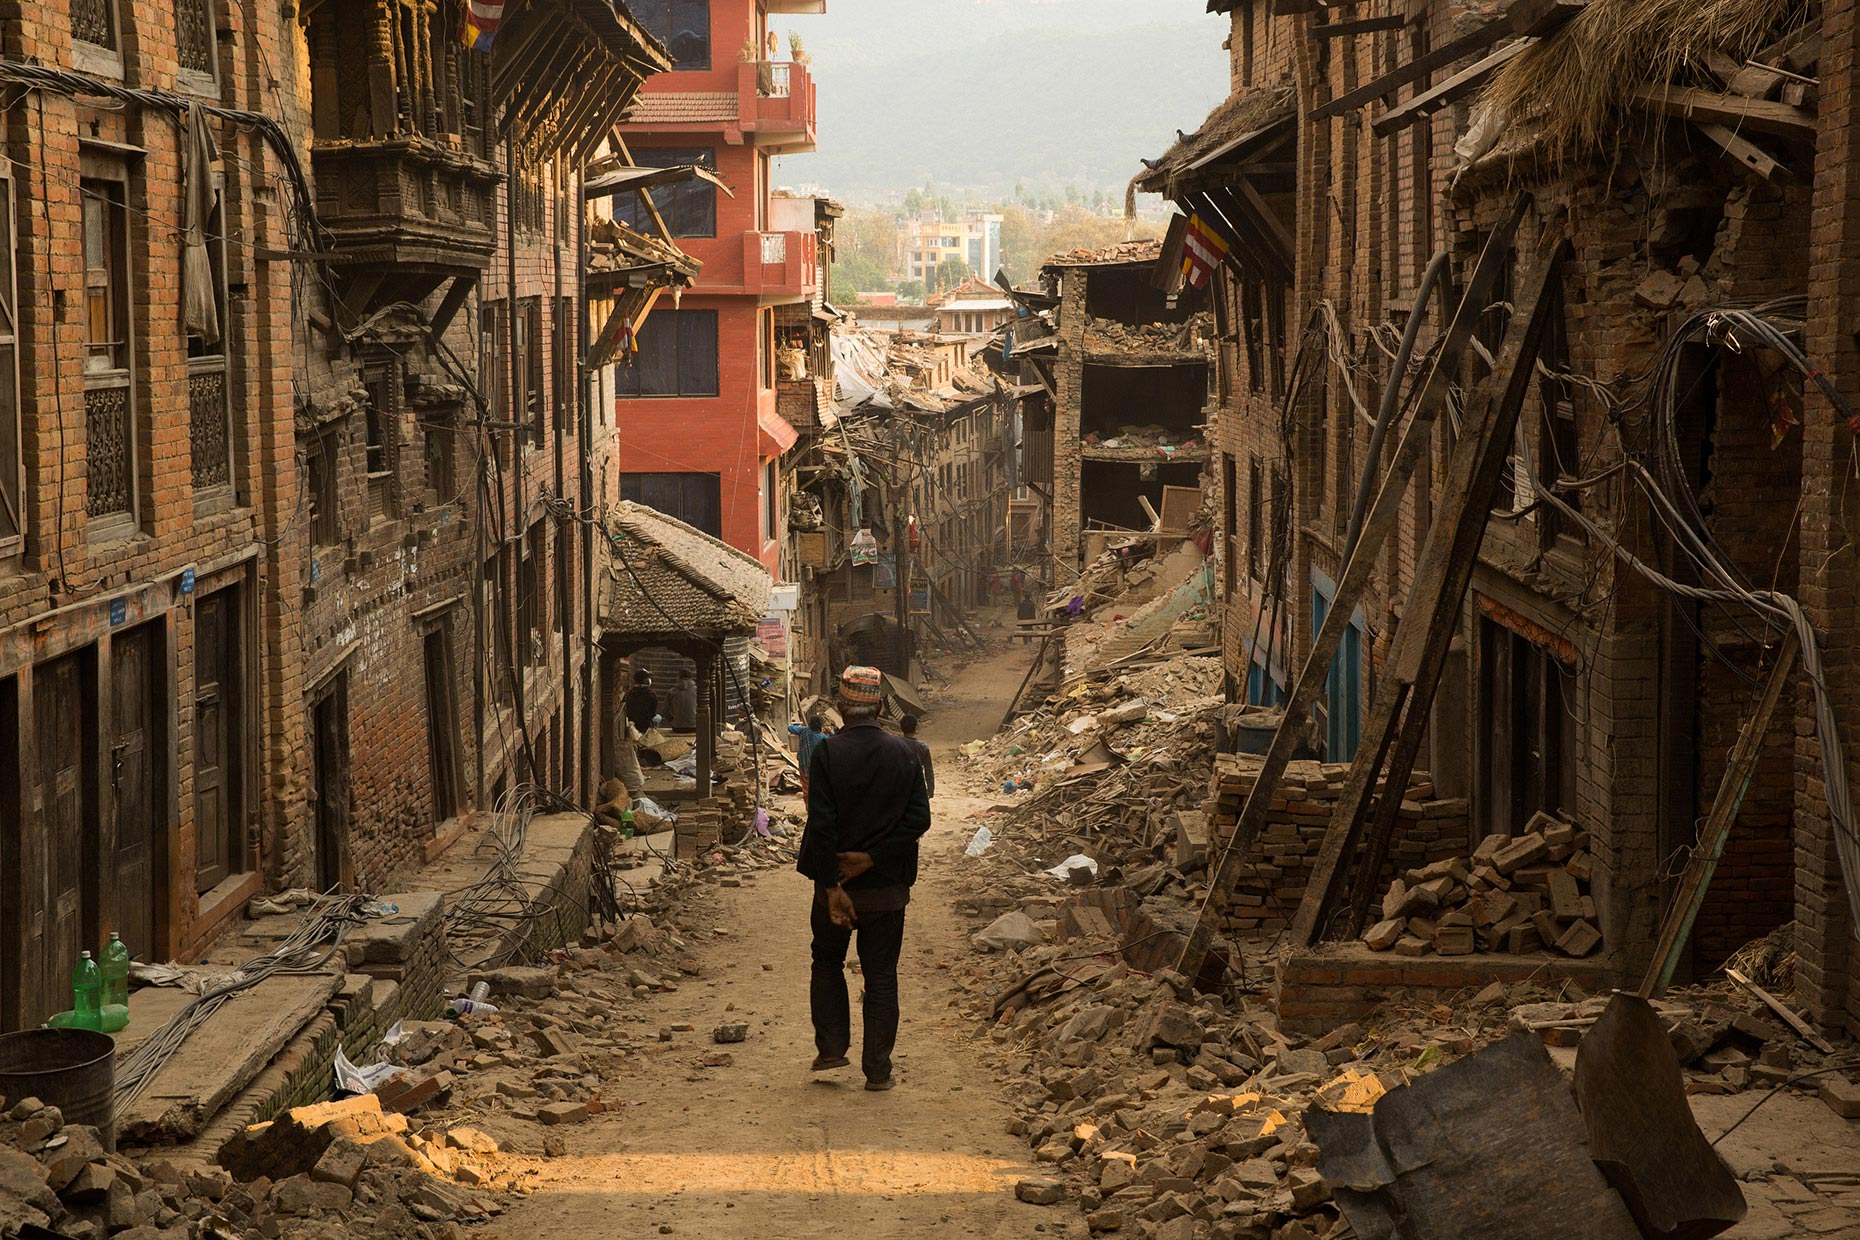 Sam-Reinders-Nepal-Earthquake_18